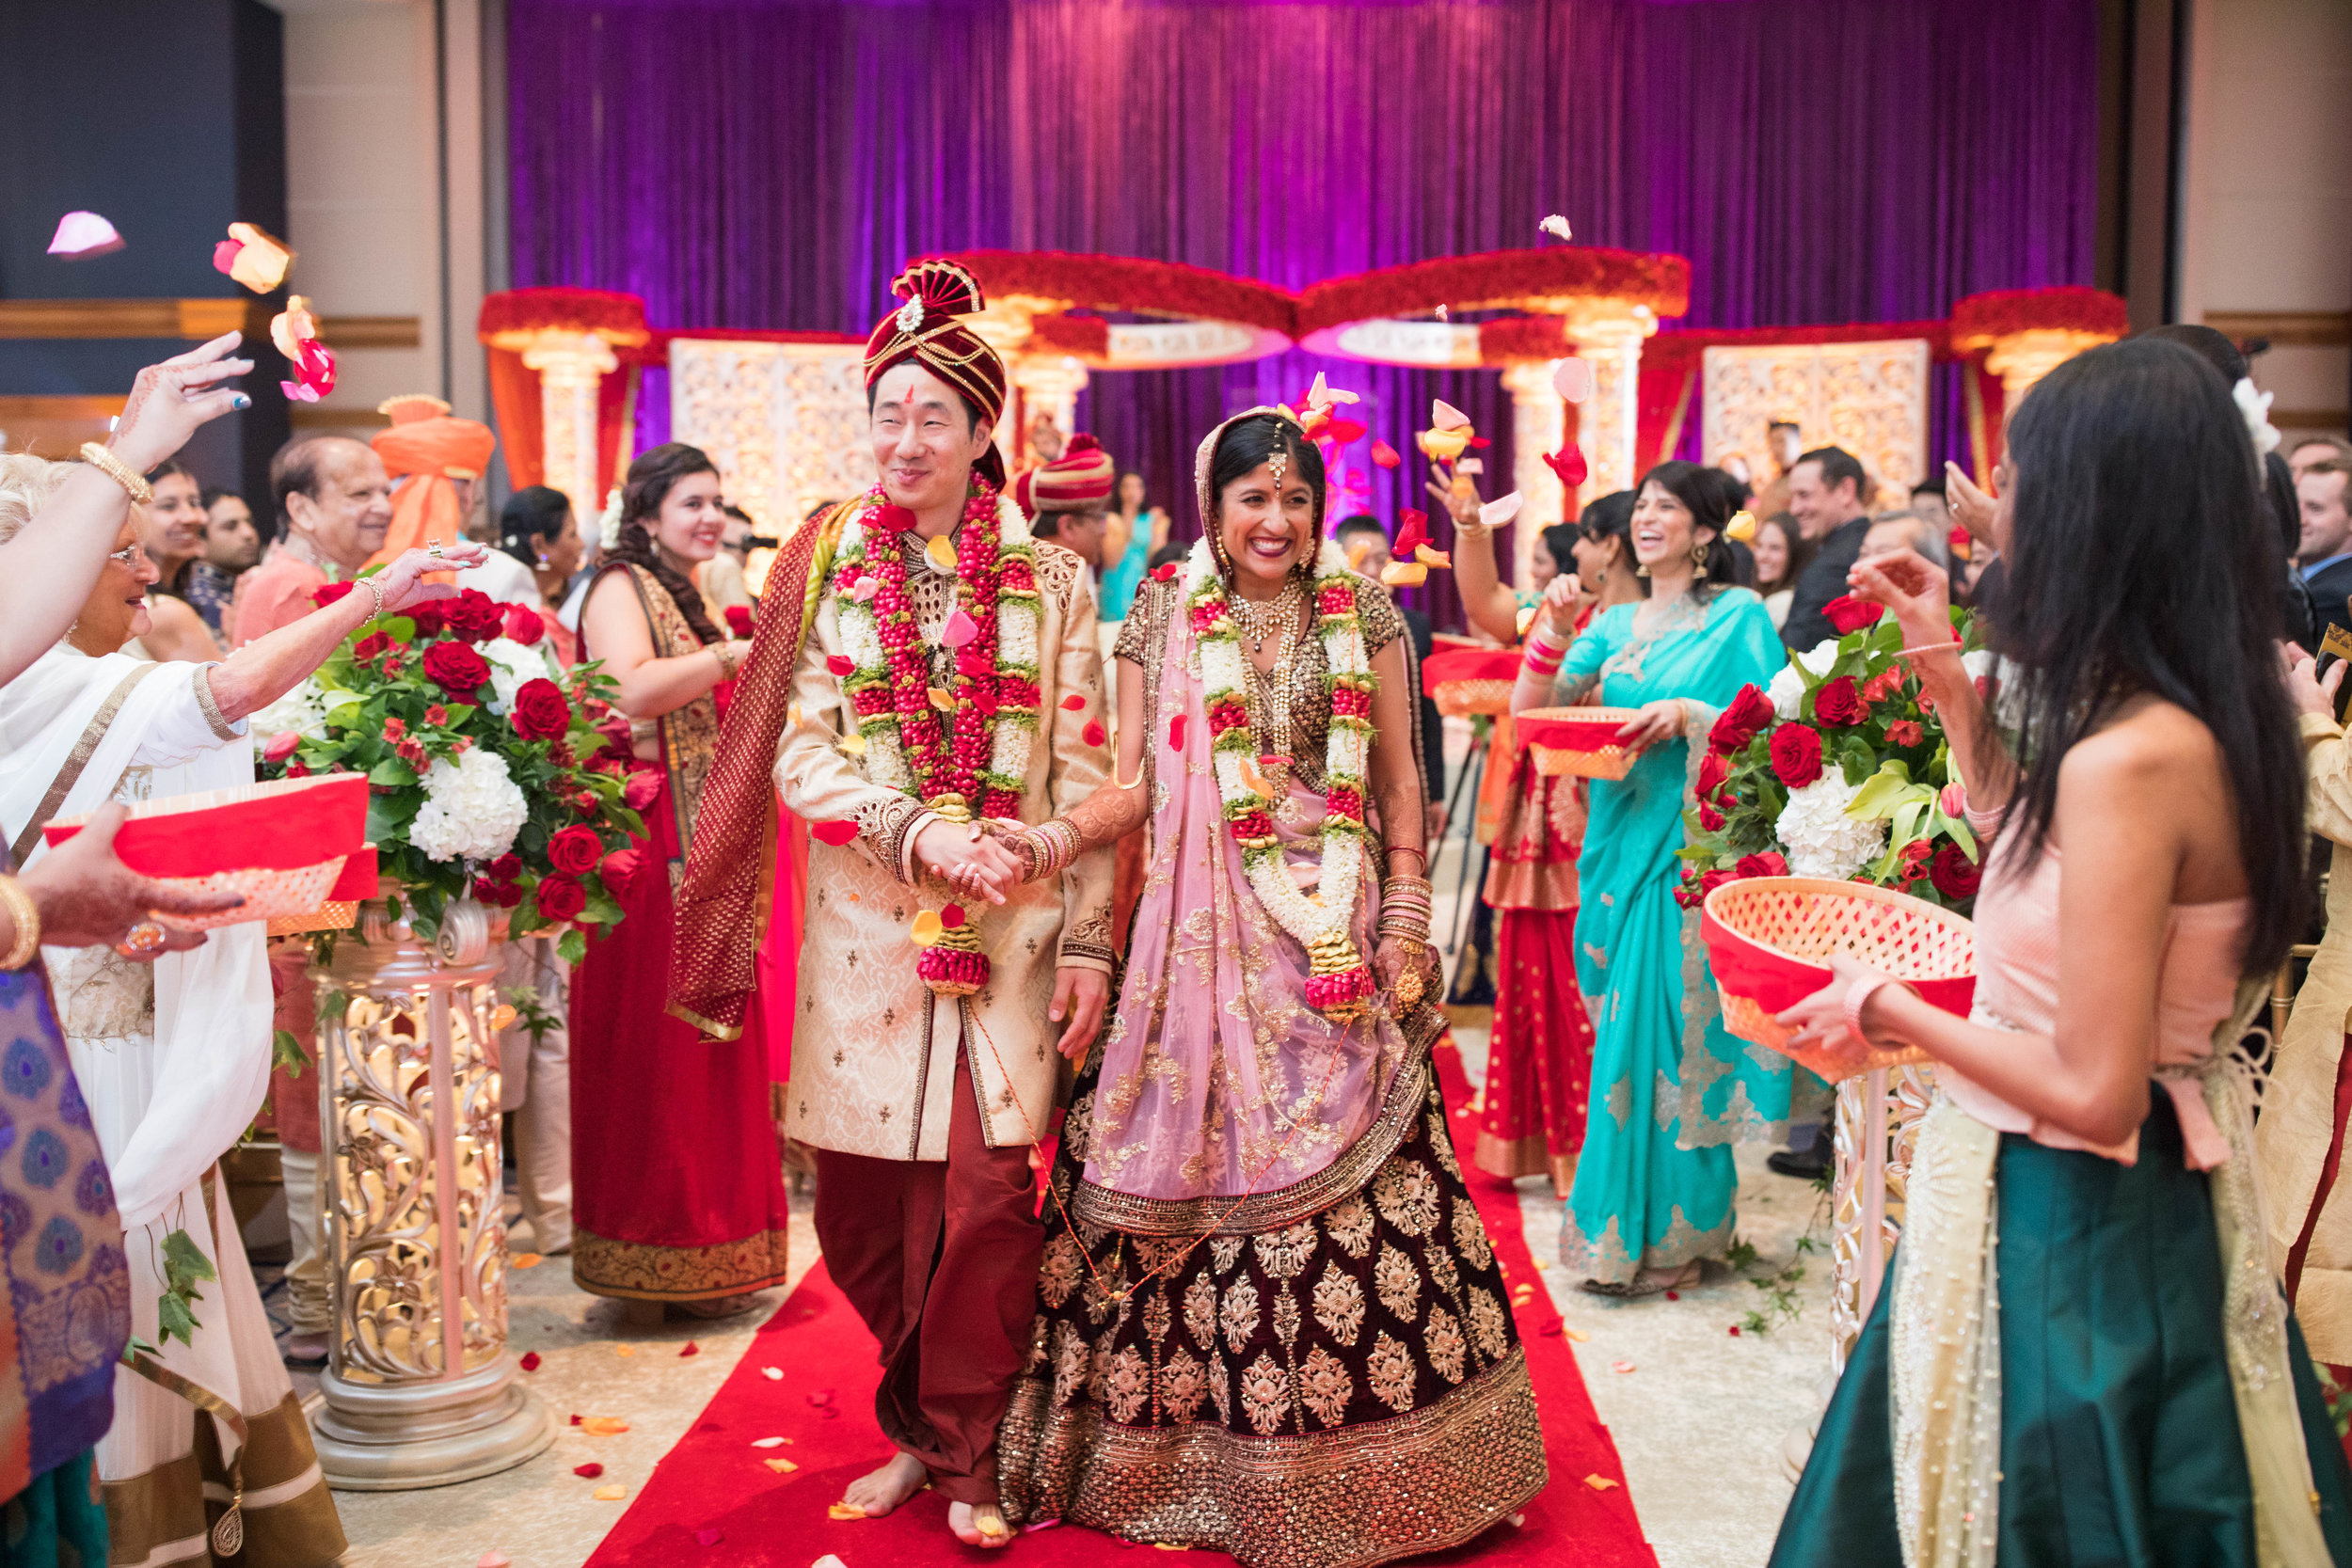 LeCapeWeddings - Chicago South Asian Wedding -94.jpg